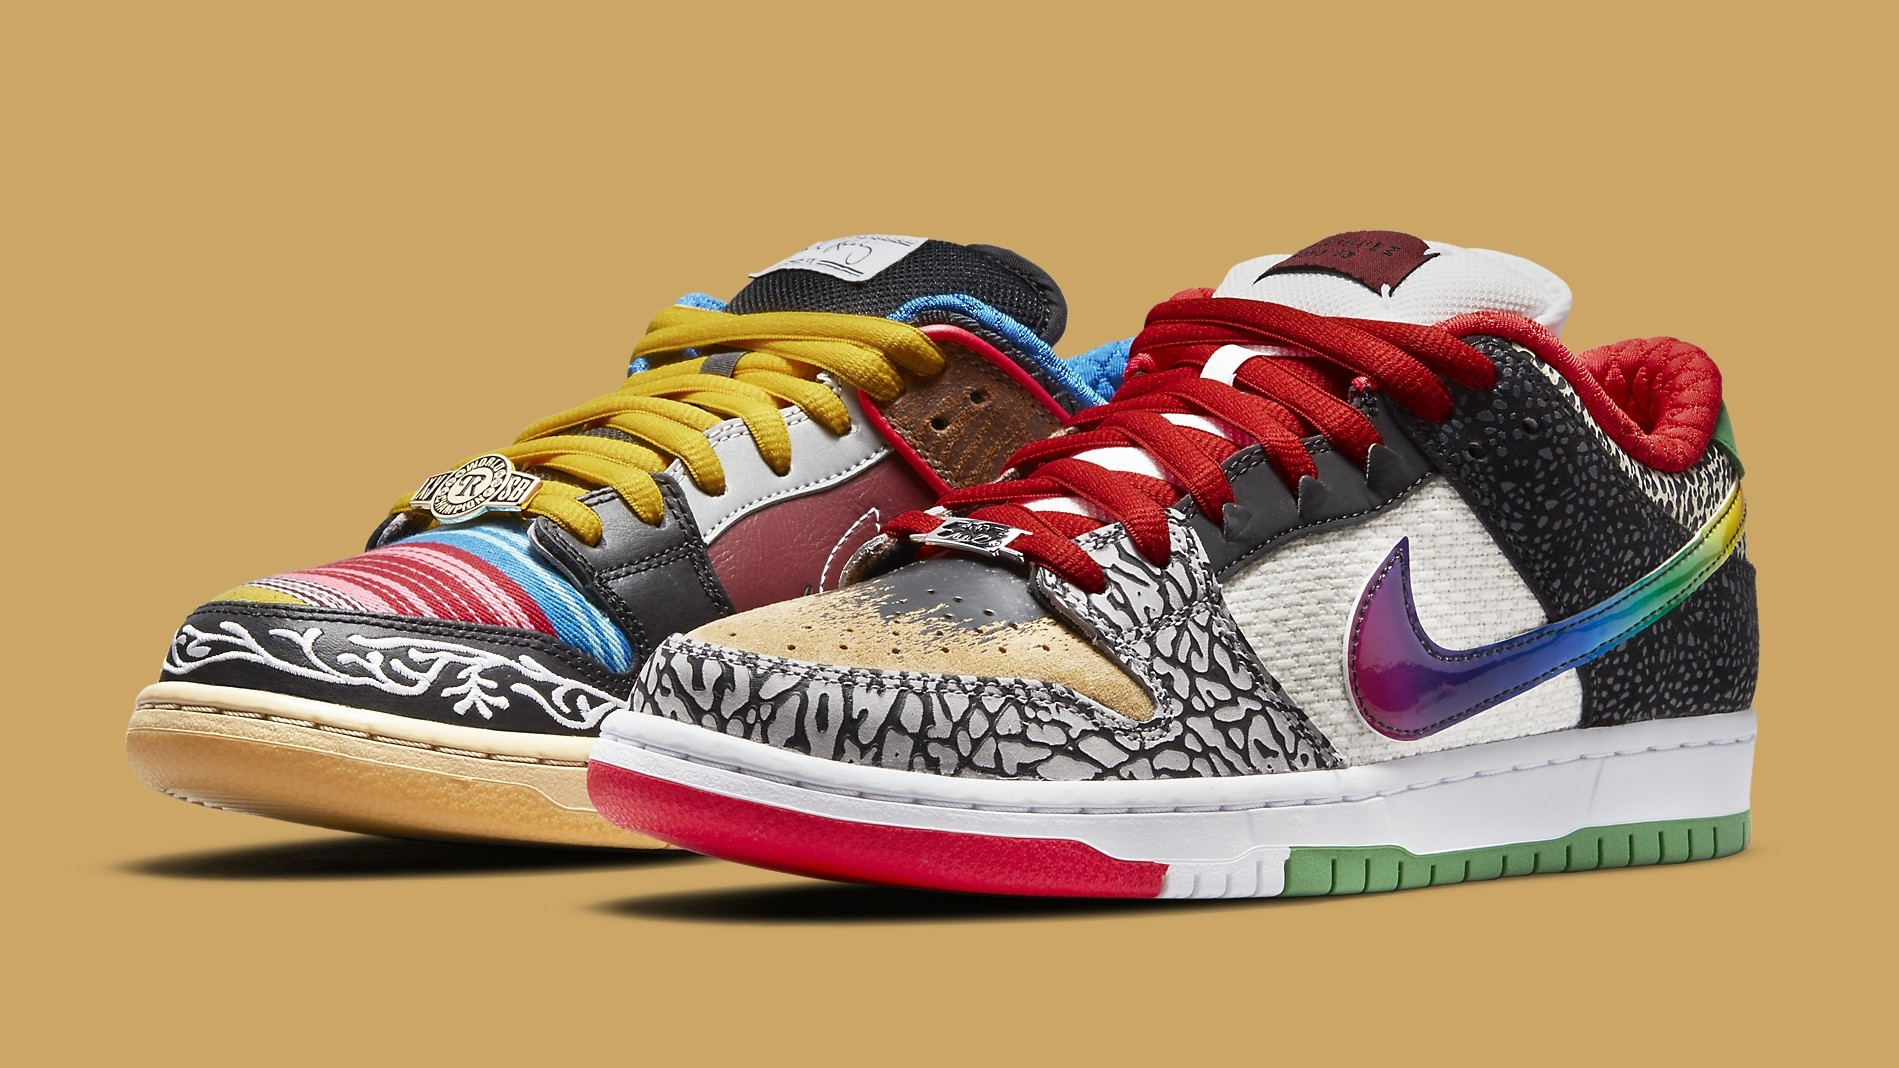 Nike SB Dunk Low 'What The Paul' Release Date CZ2239-600 | Sole ...